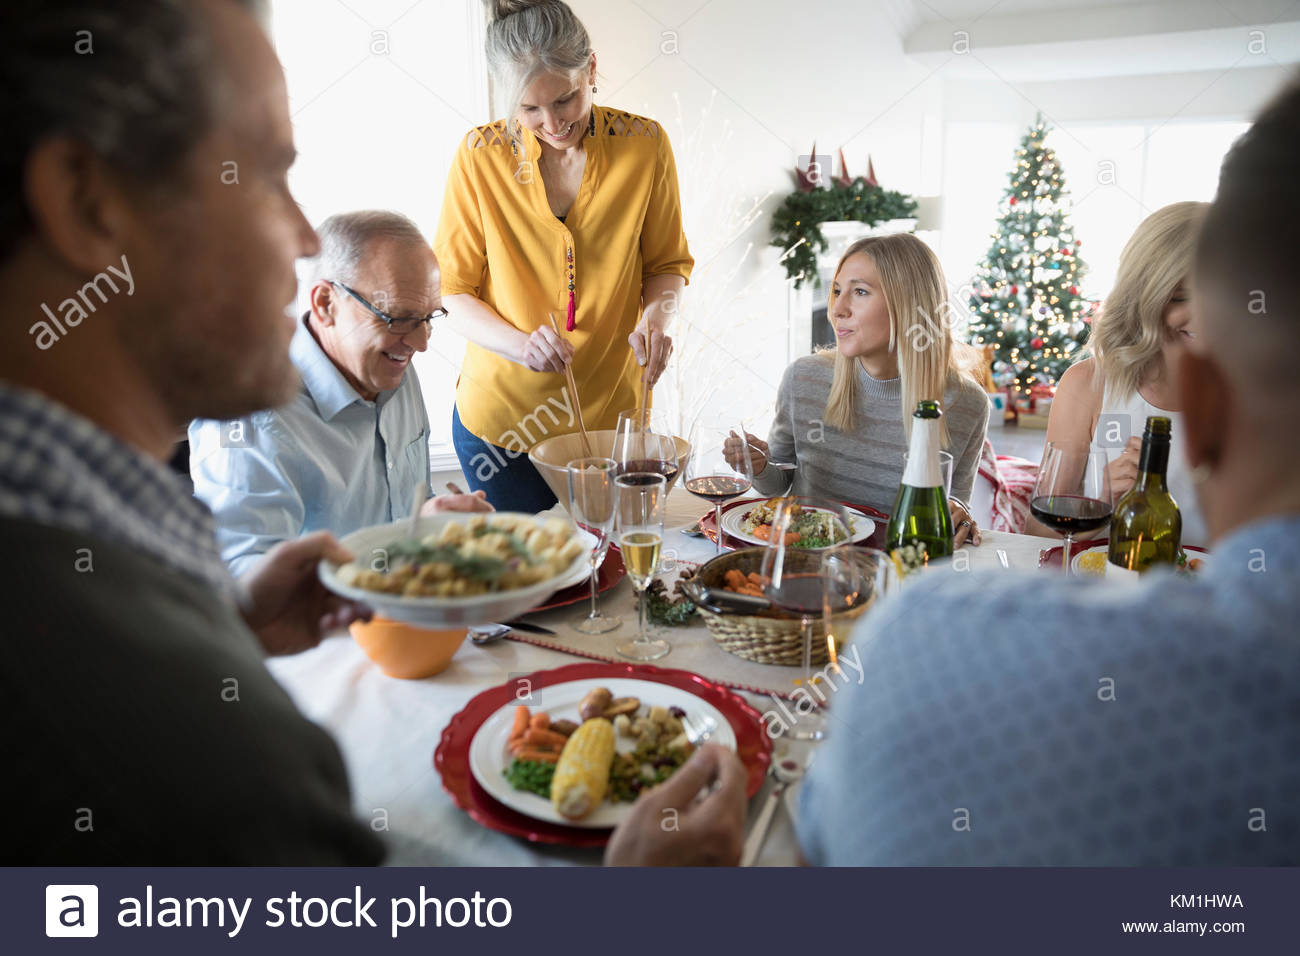 Family enjoying Christmas dinner at table - Stock Image